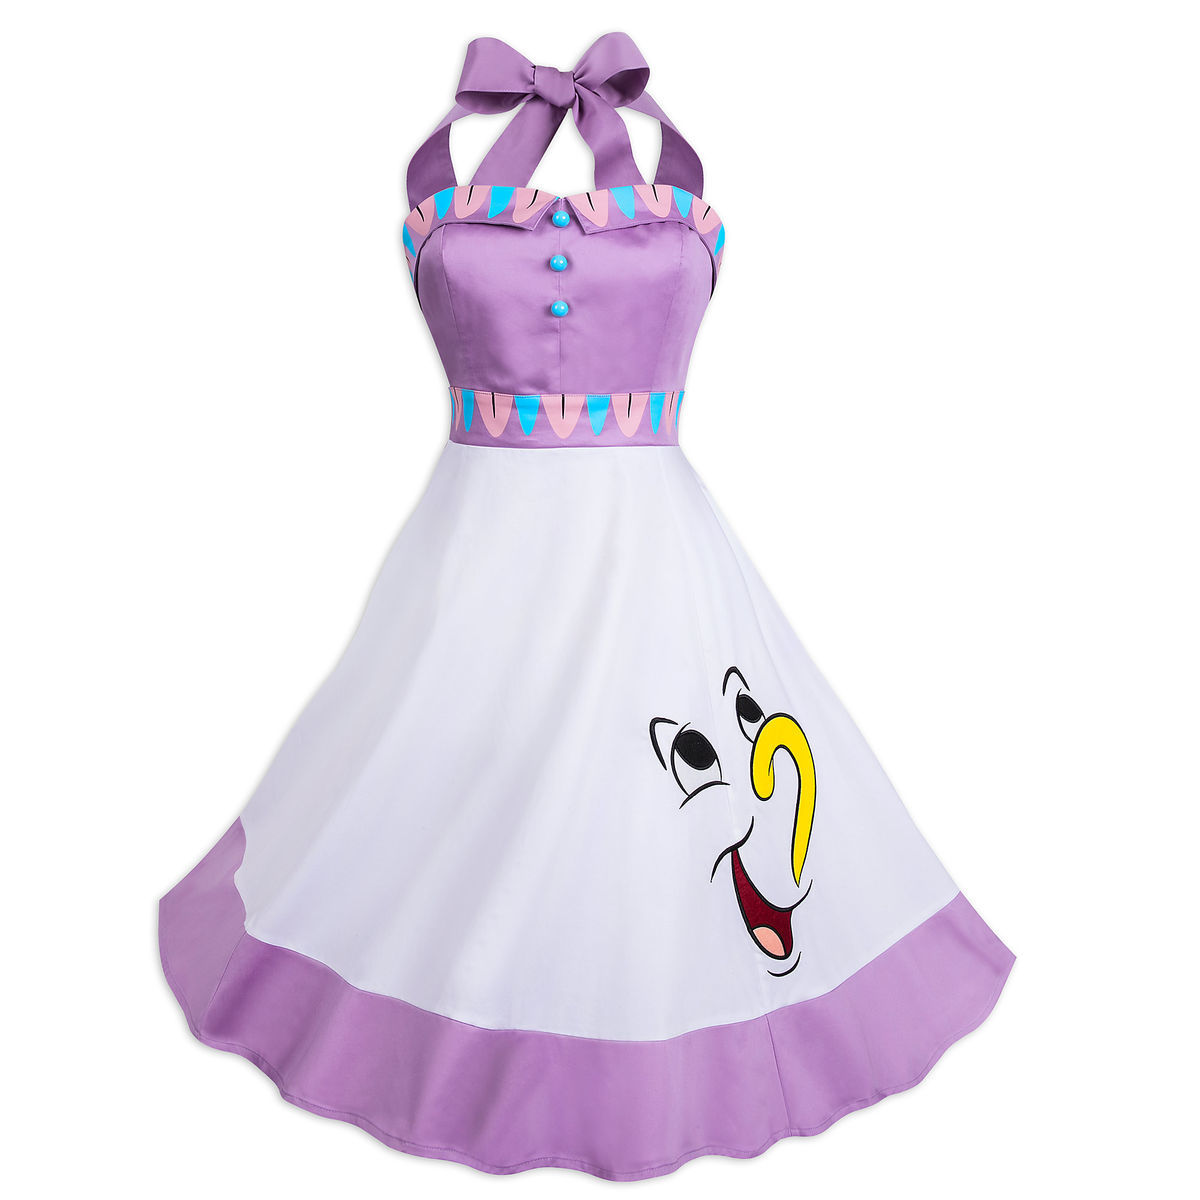 Mrs Potts And Chip Dress For Women Beauty And The Beast Shopdisney